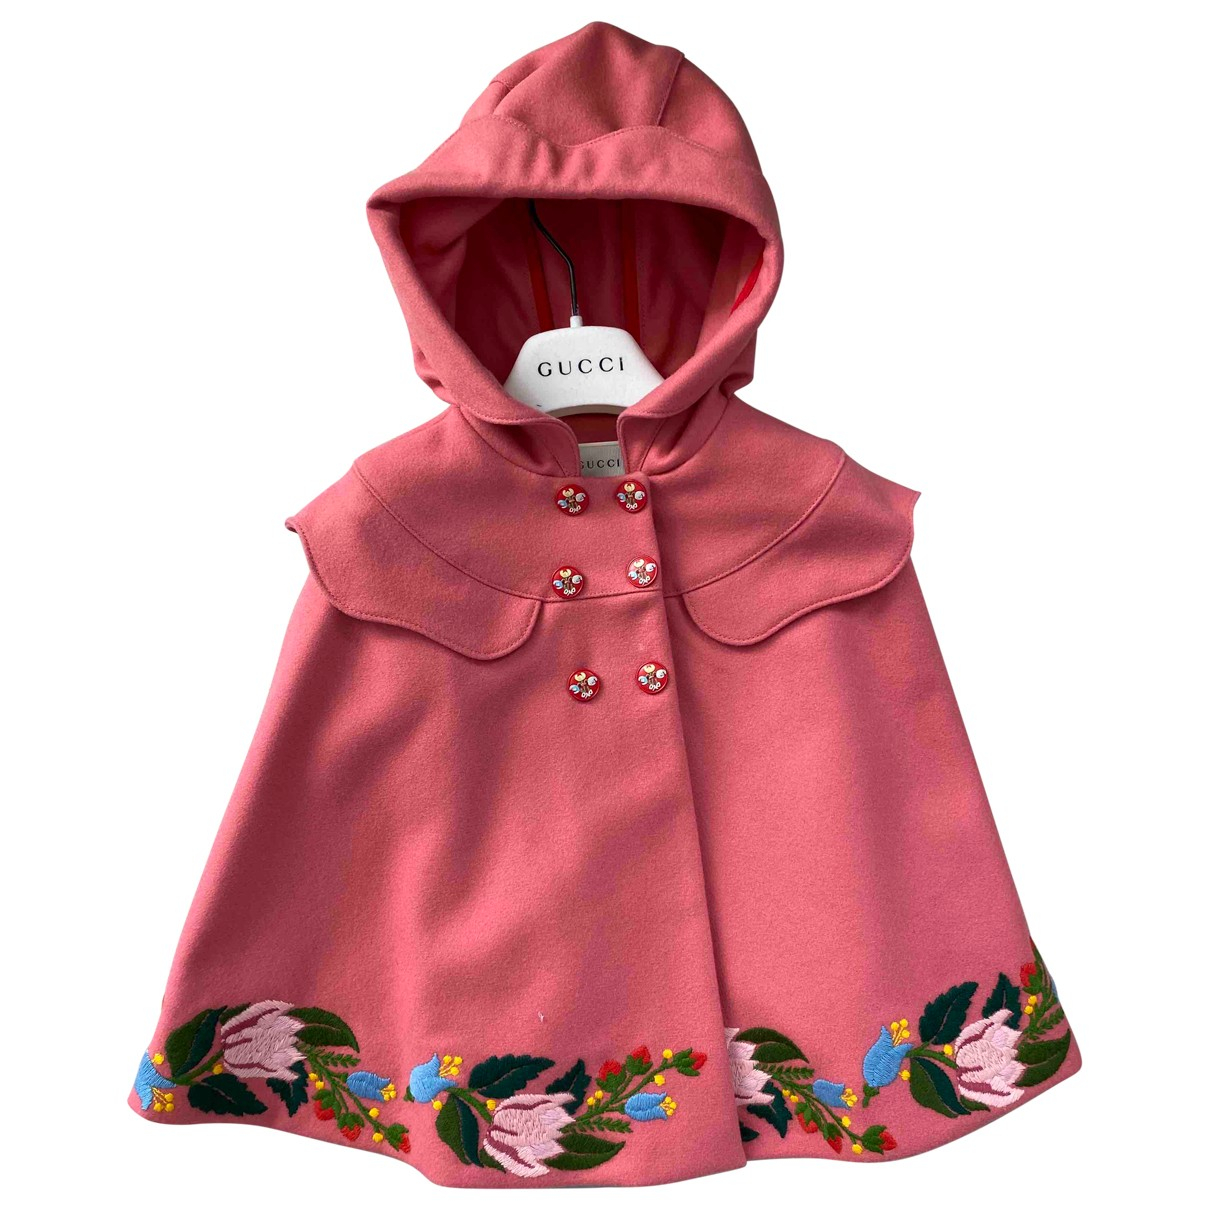 Gucci \N Pink Wool jacket & coat for Kids 2 years - up to 86cm FR